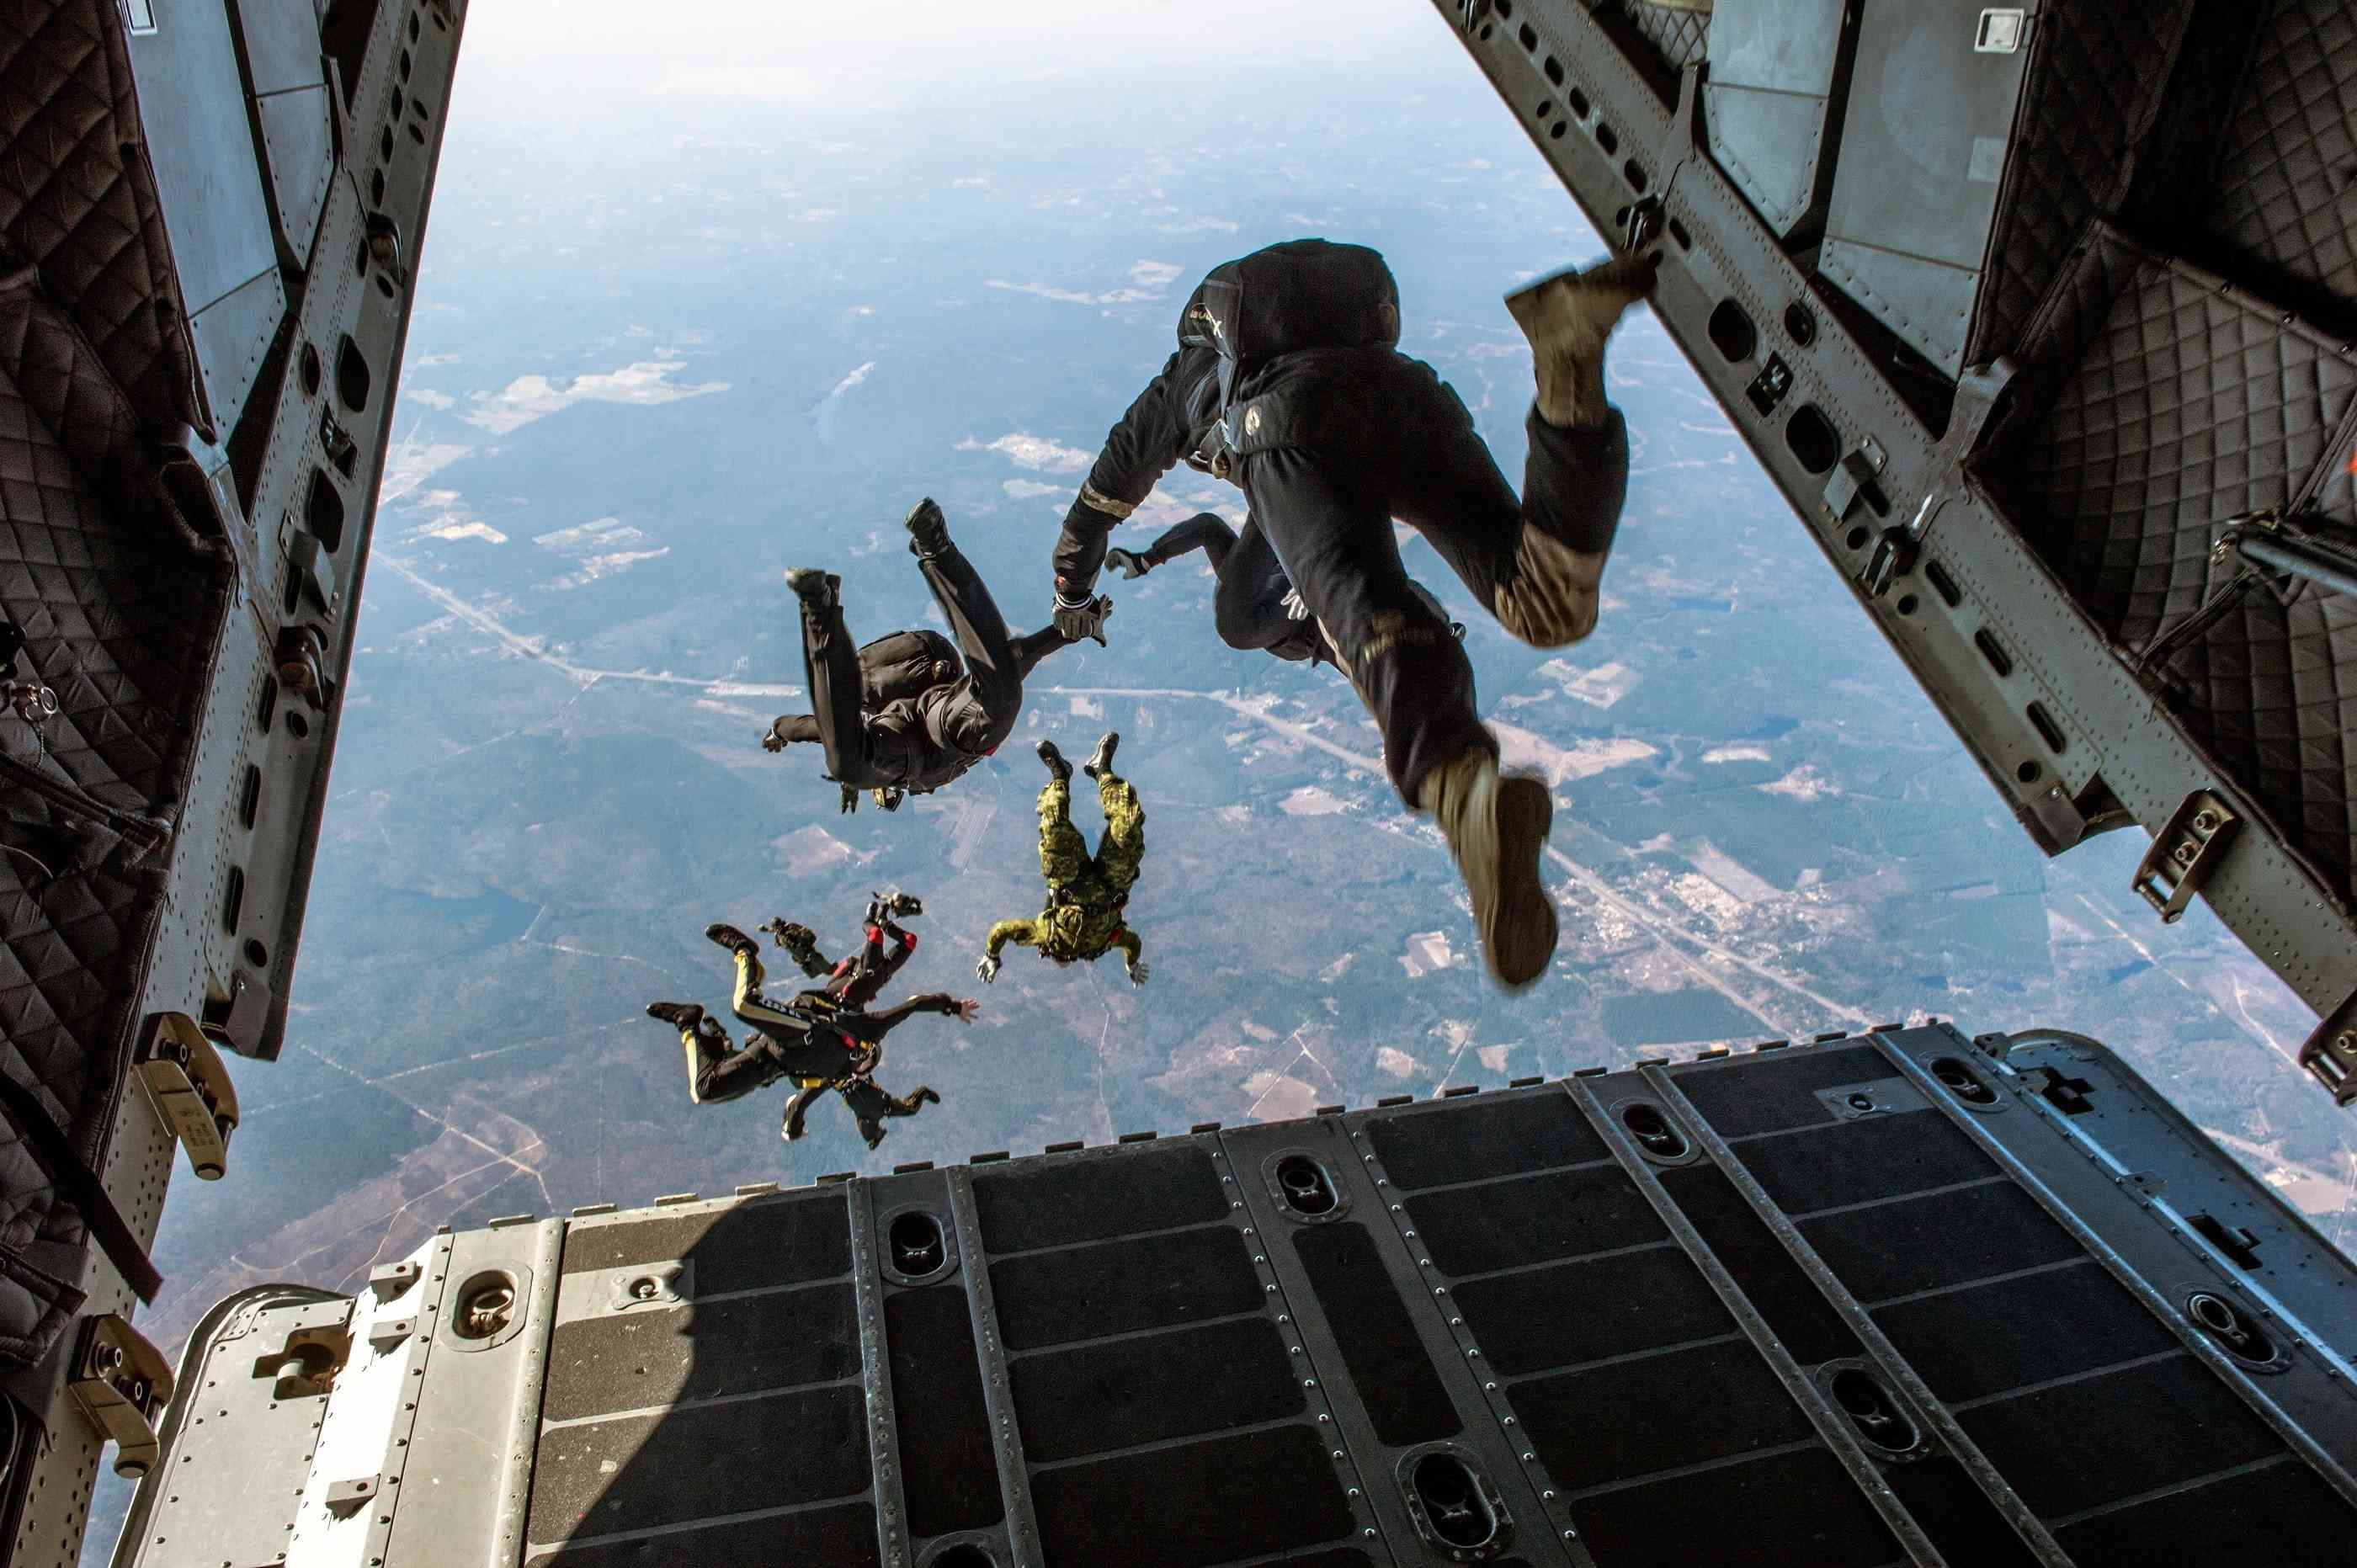 Several people jumping out of the back of a plane as seen from first person perspective.